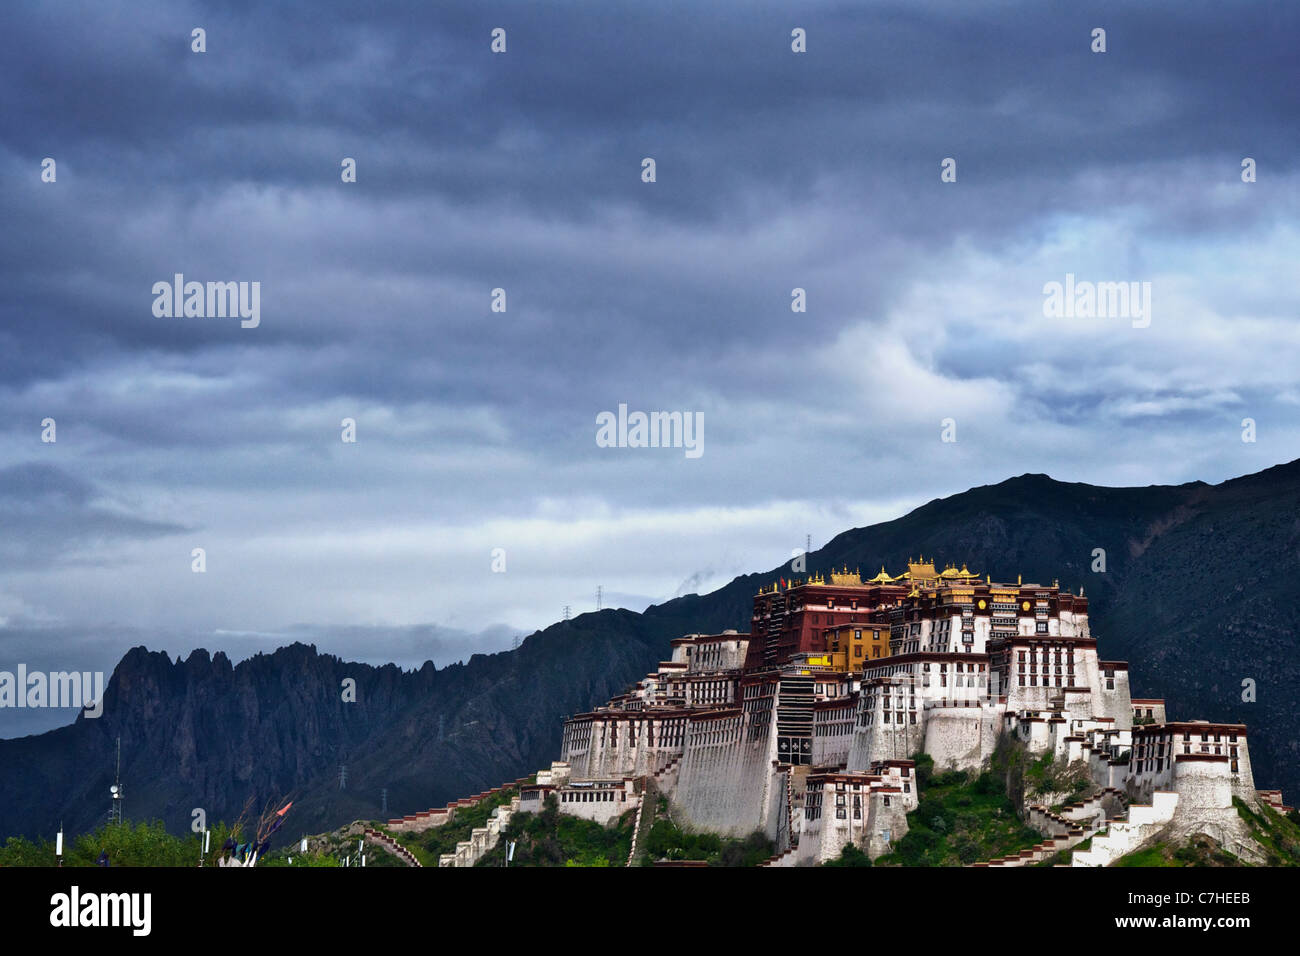 Potala Palace and cliffs - Stock Image